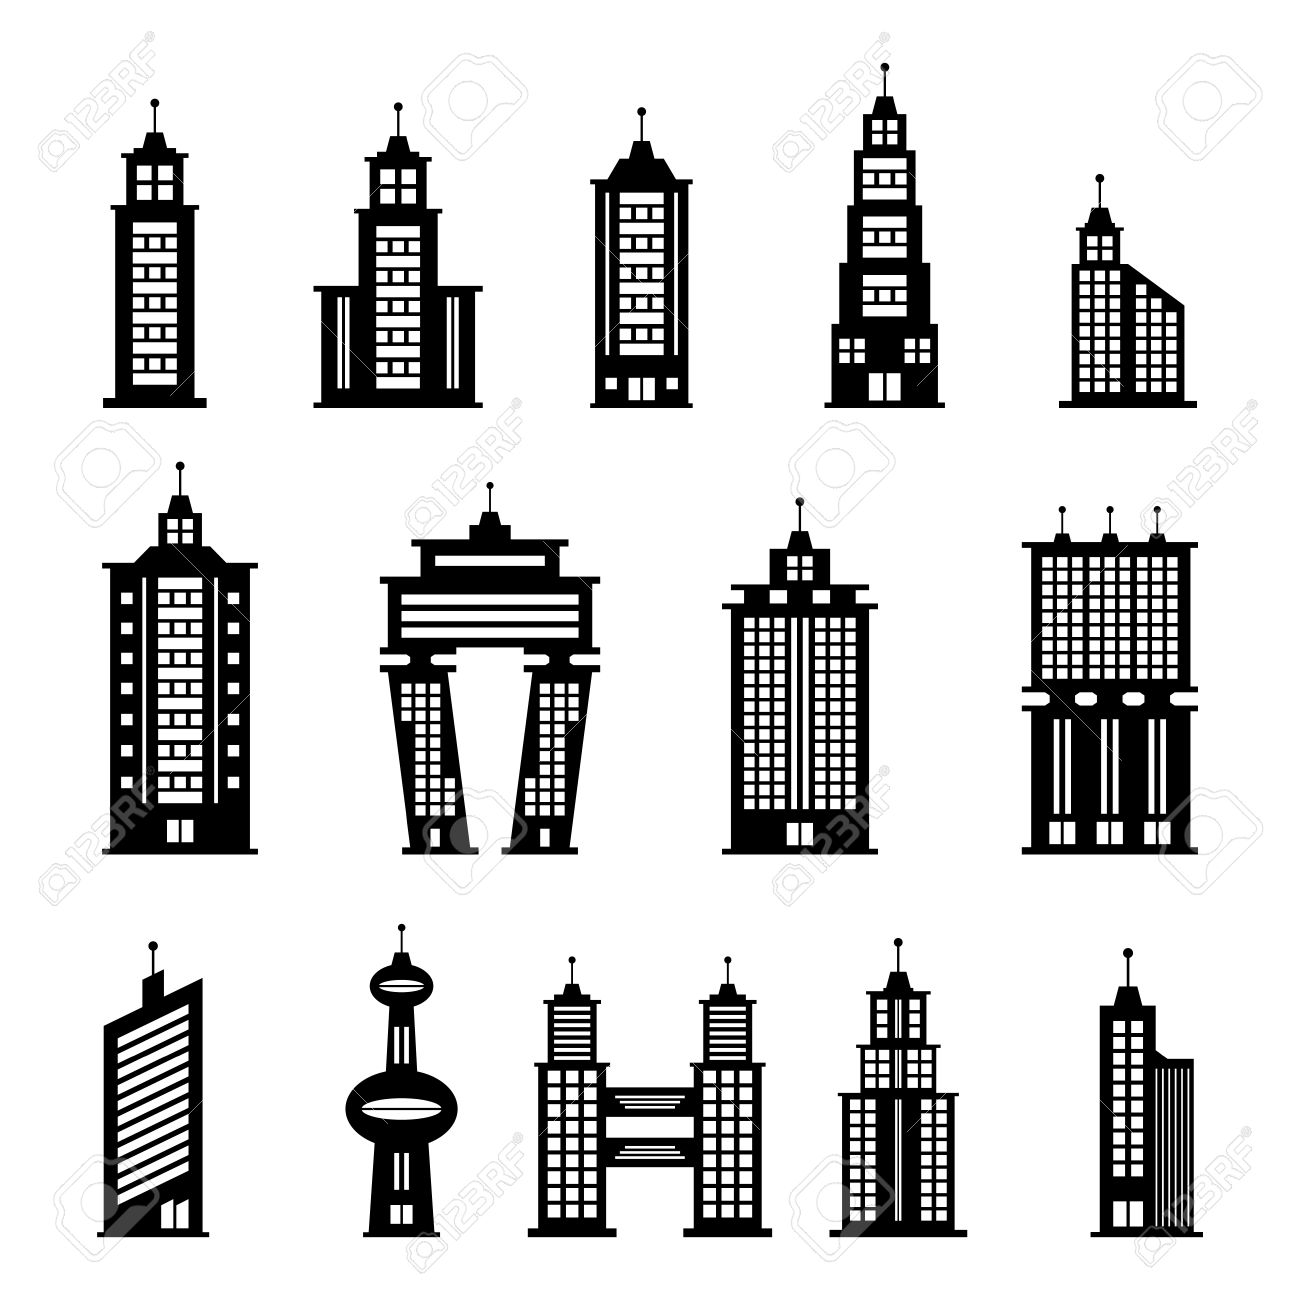 Building Vector Royalty Free Cliparts Vectors And Stock